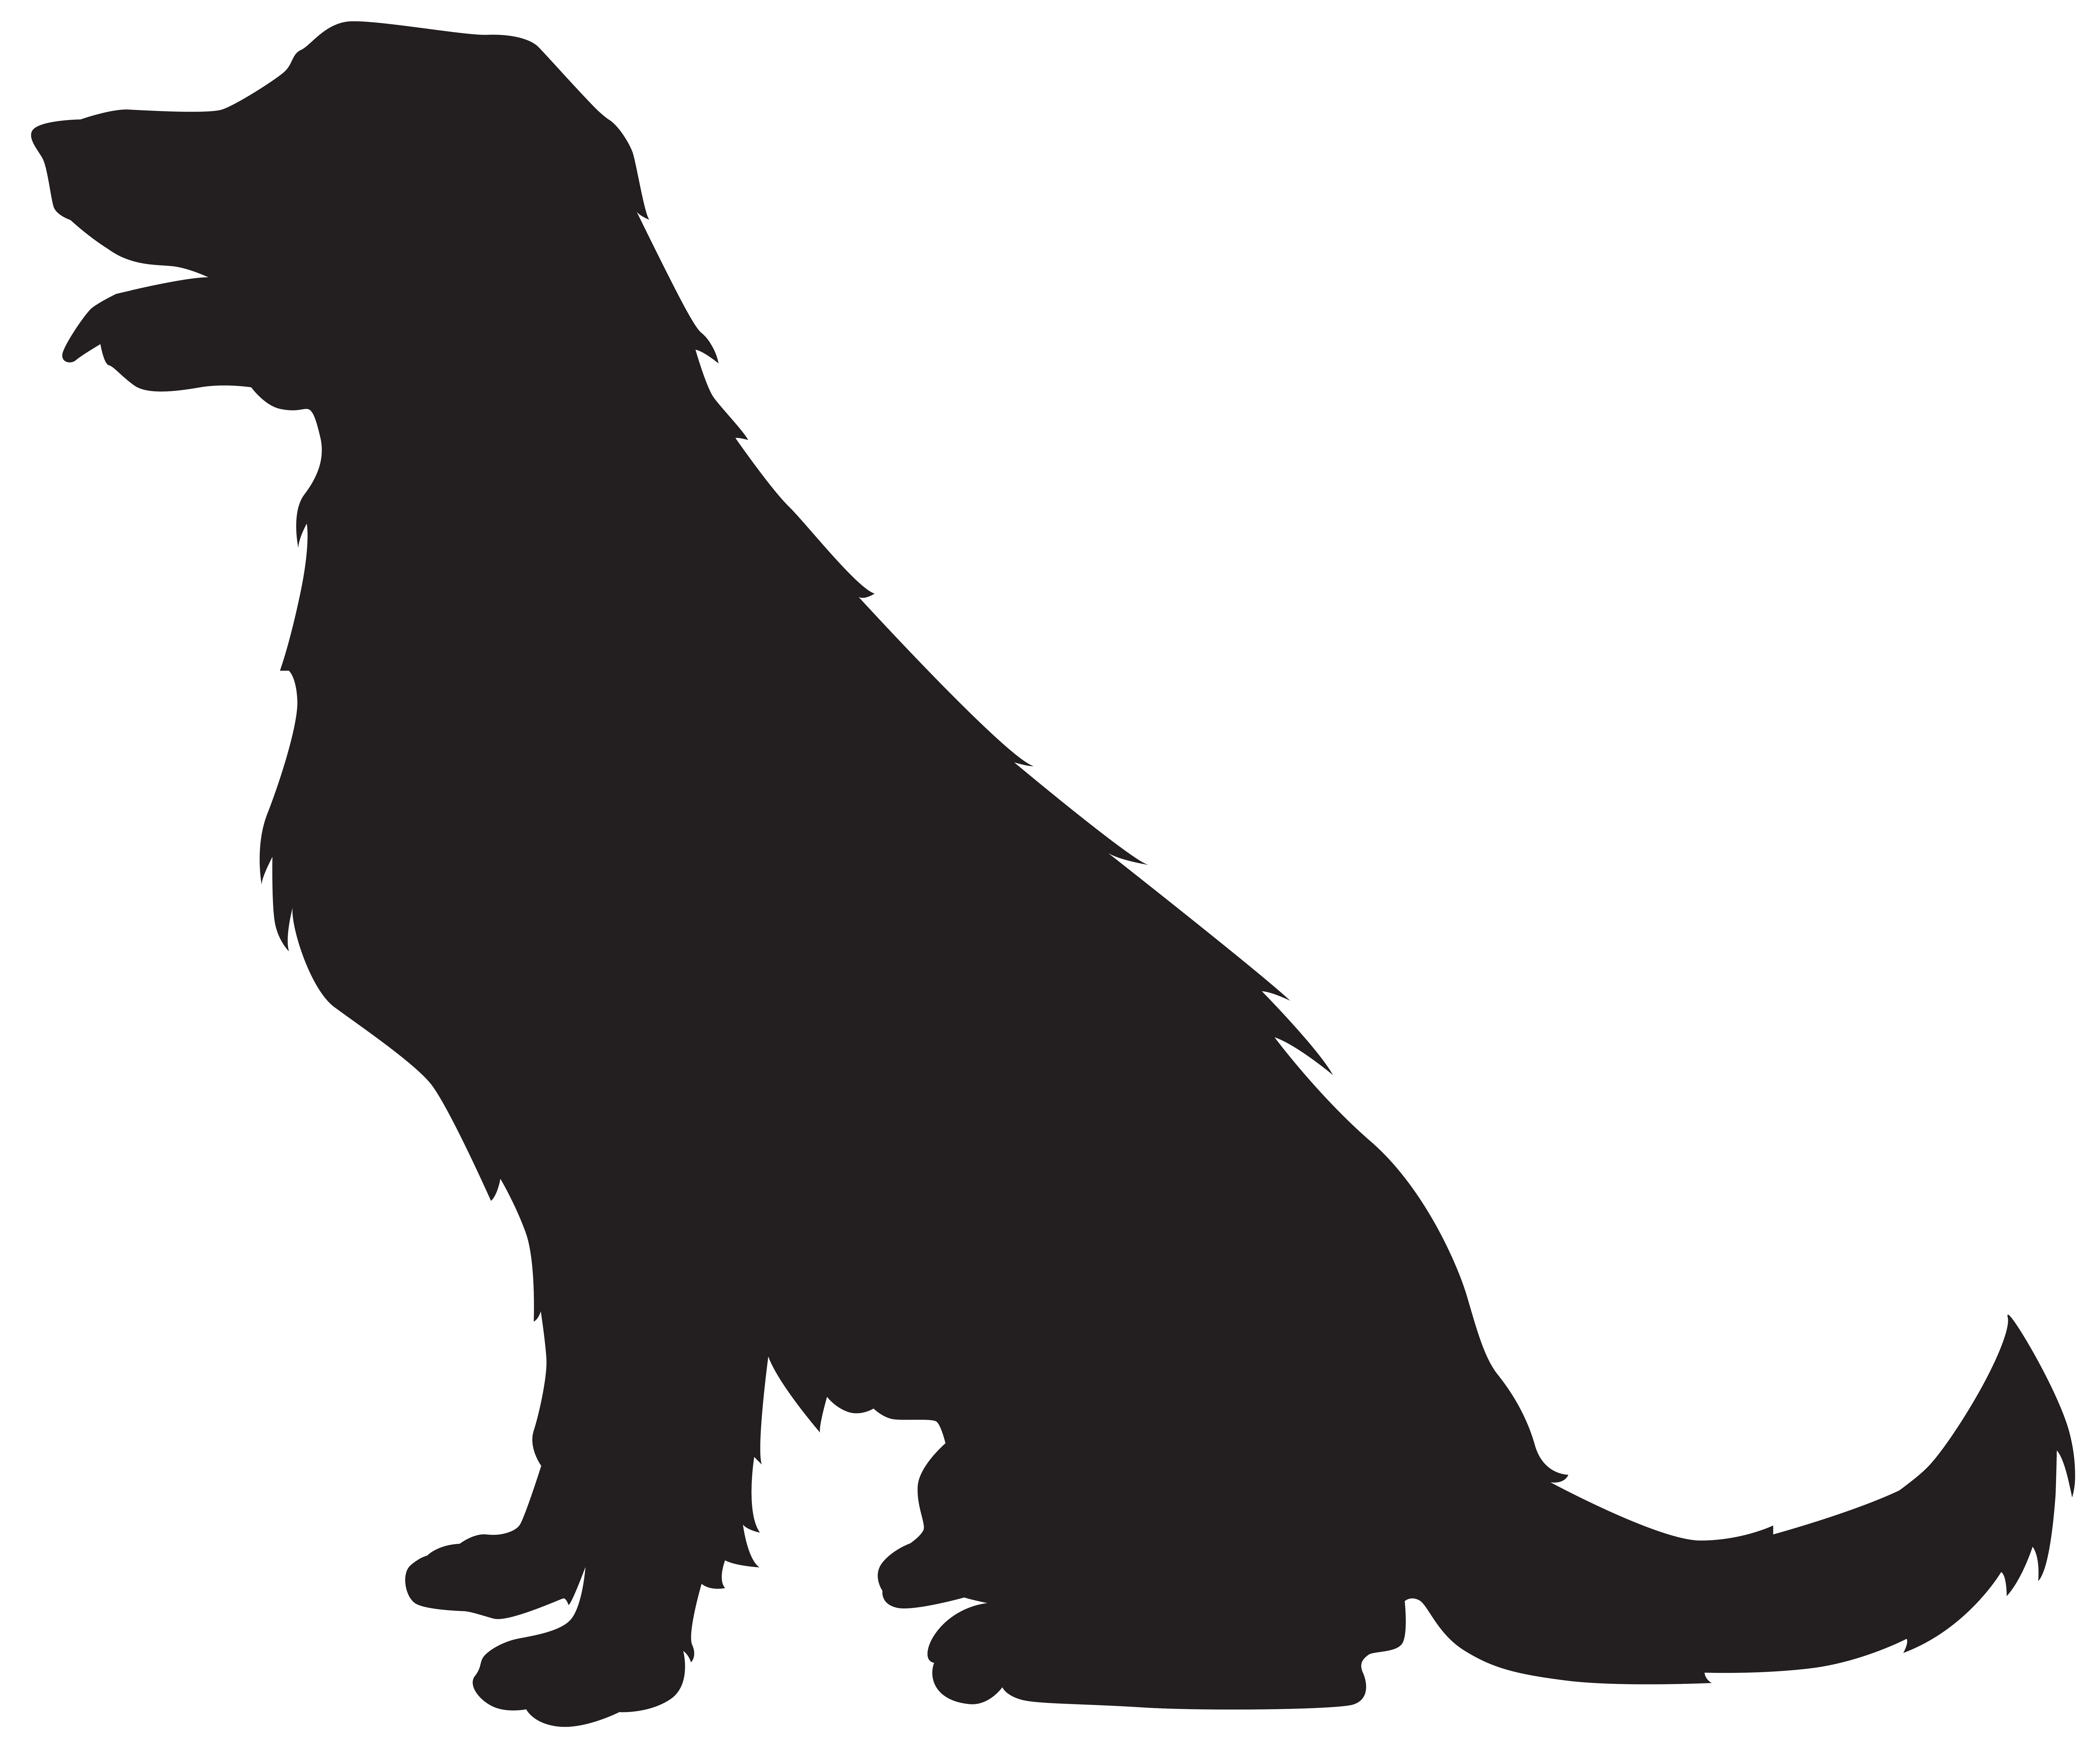 Paw clipart silhouette dog. Pug pencil and in